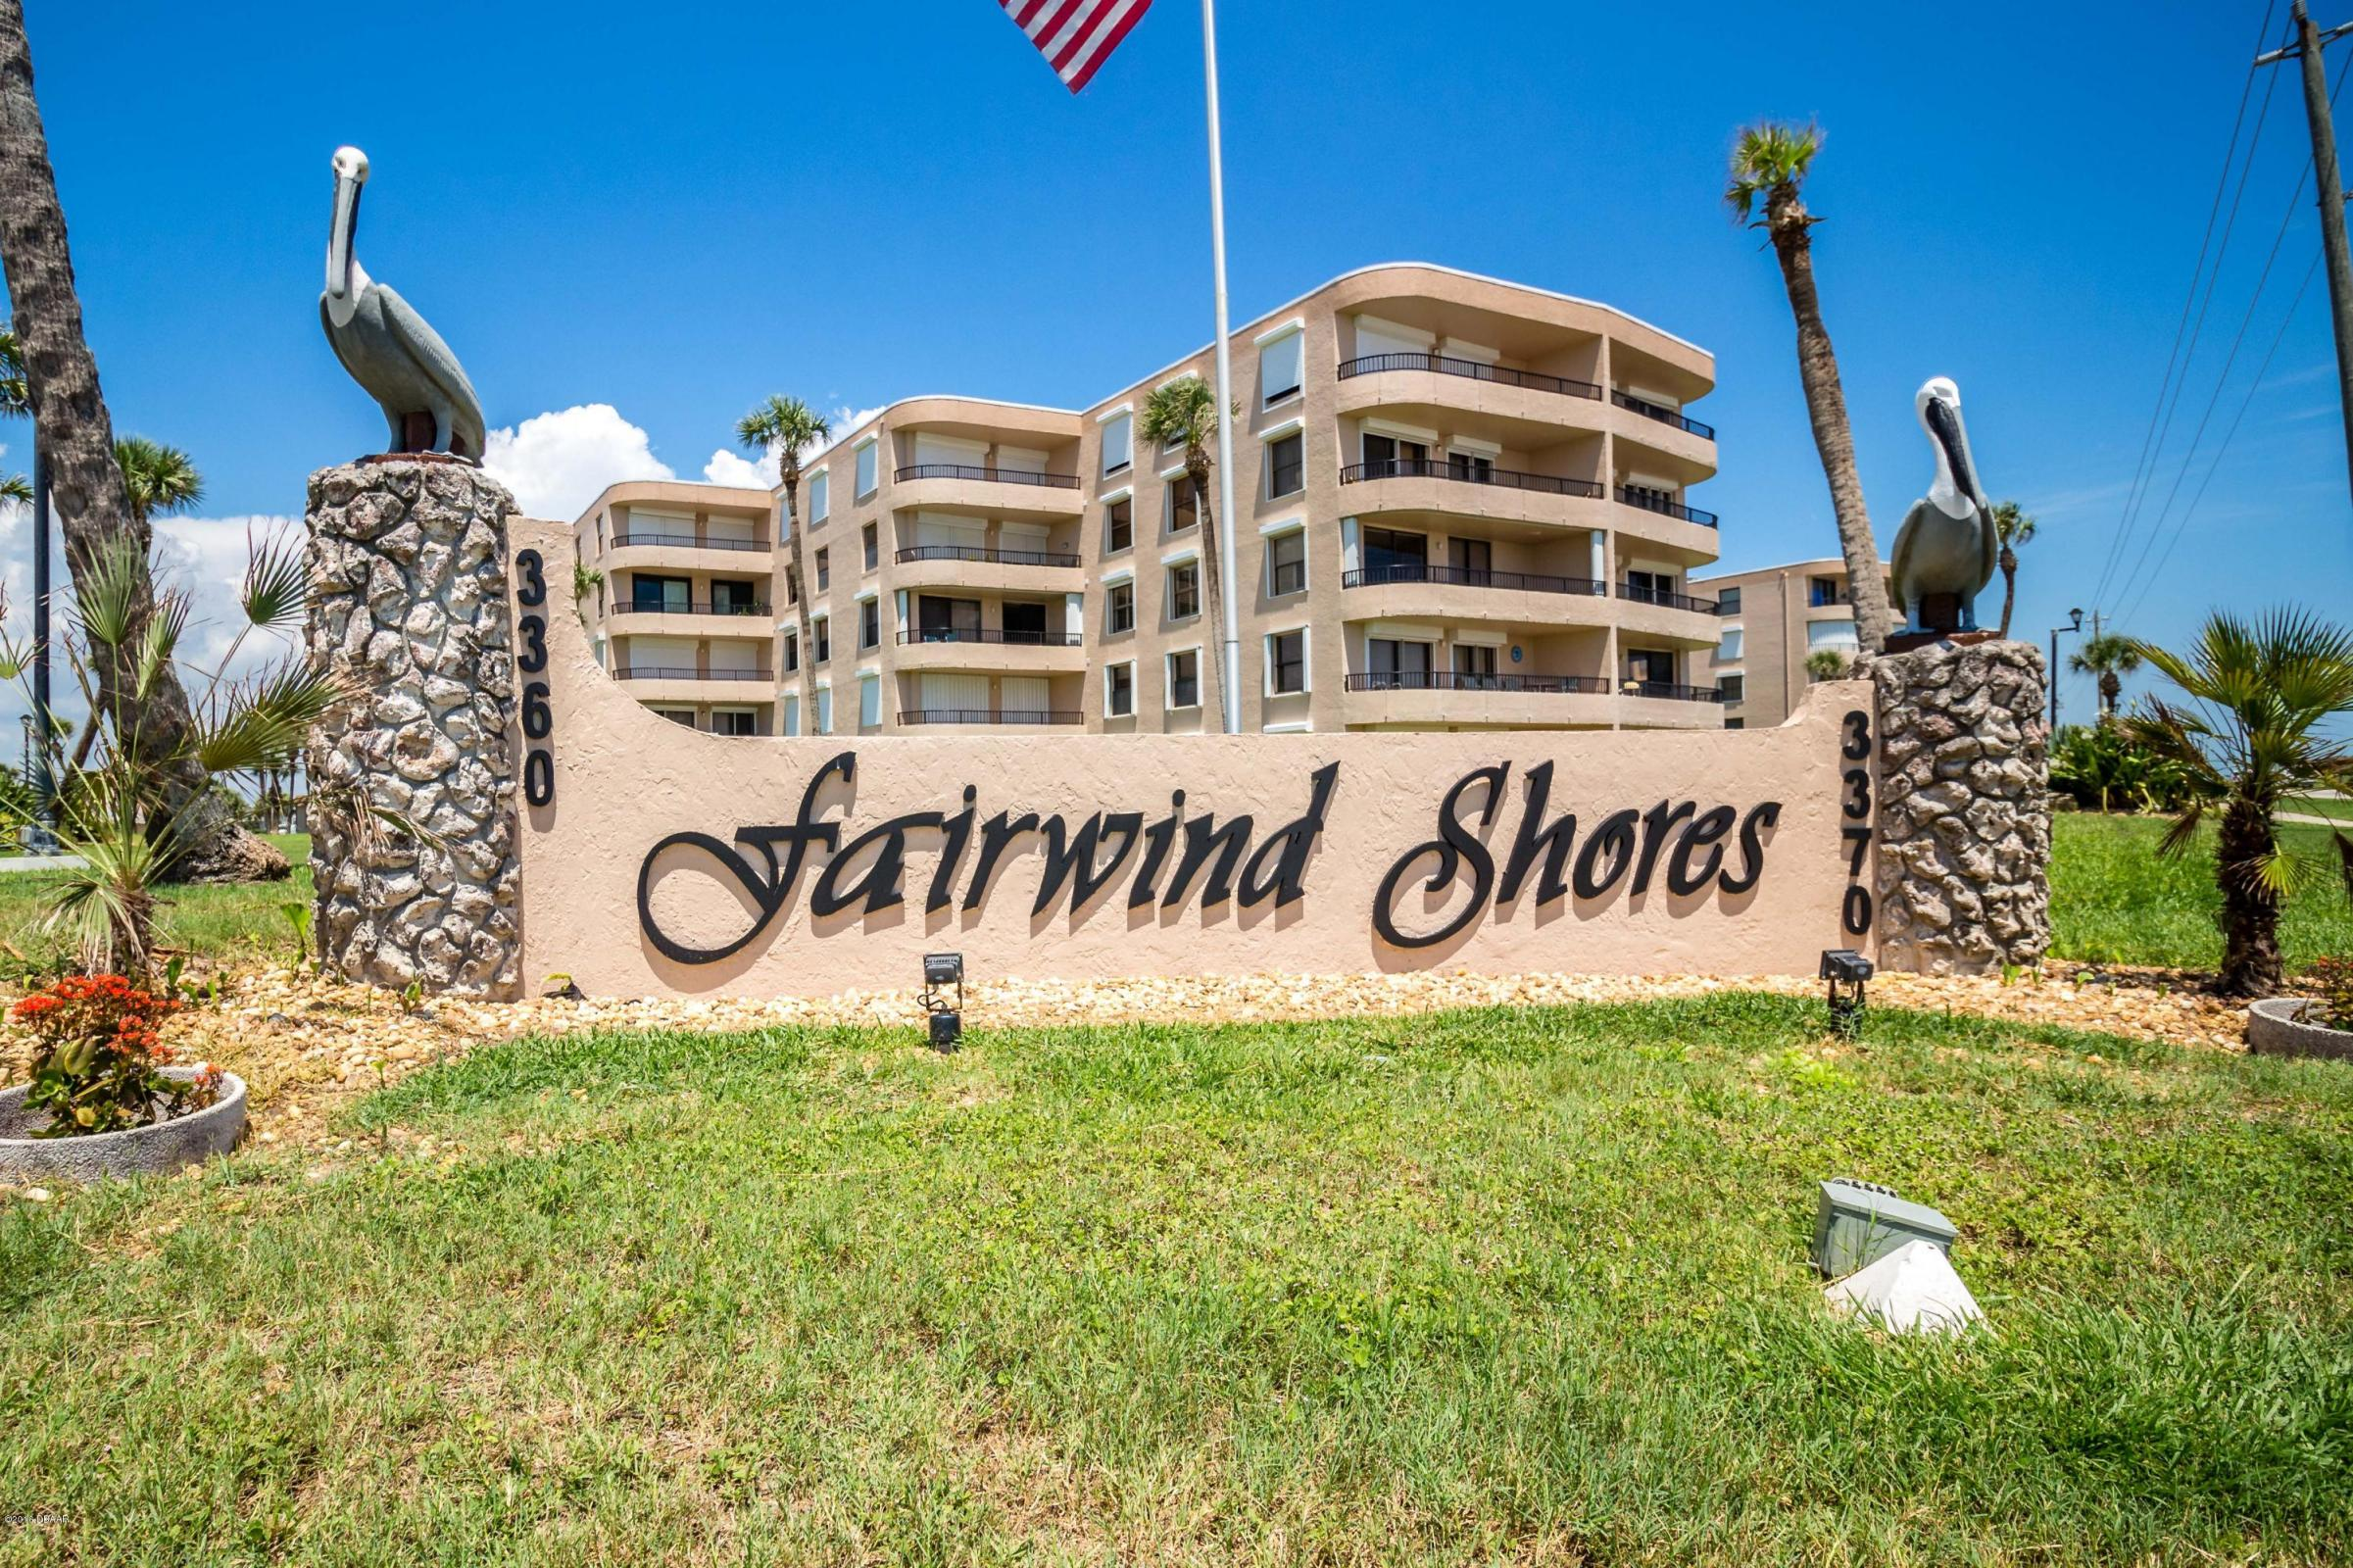 fairwind shores condo pool ormond beach